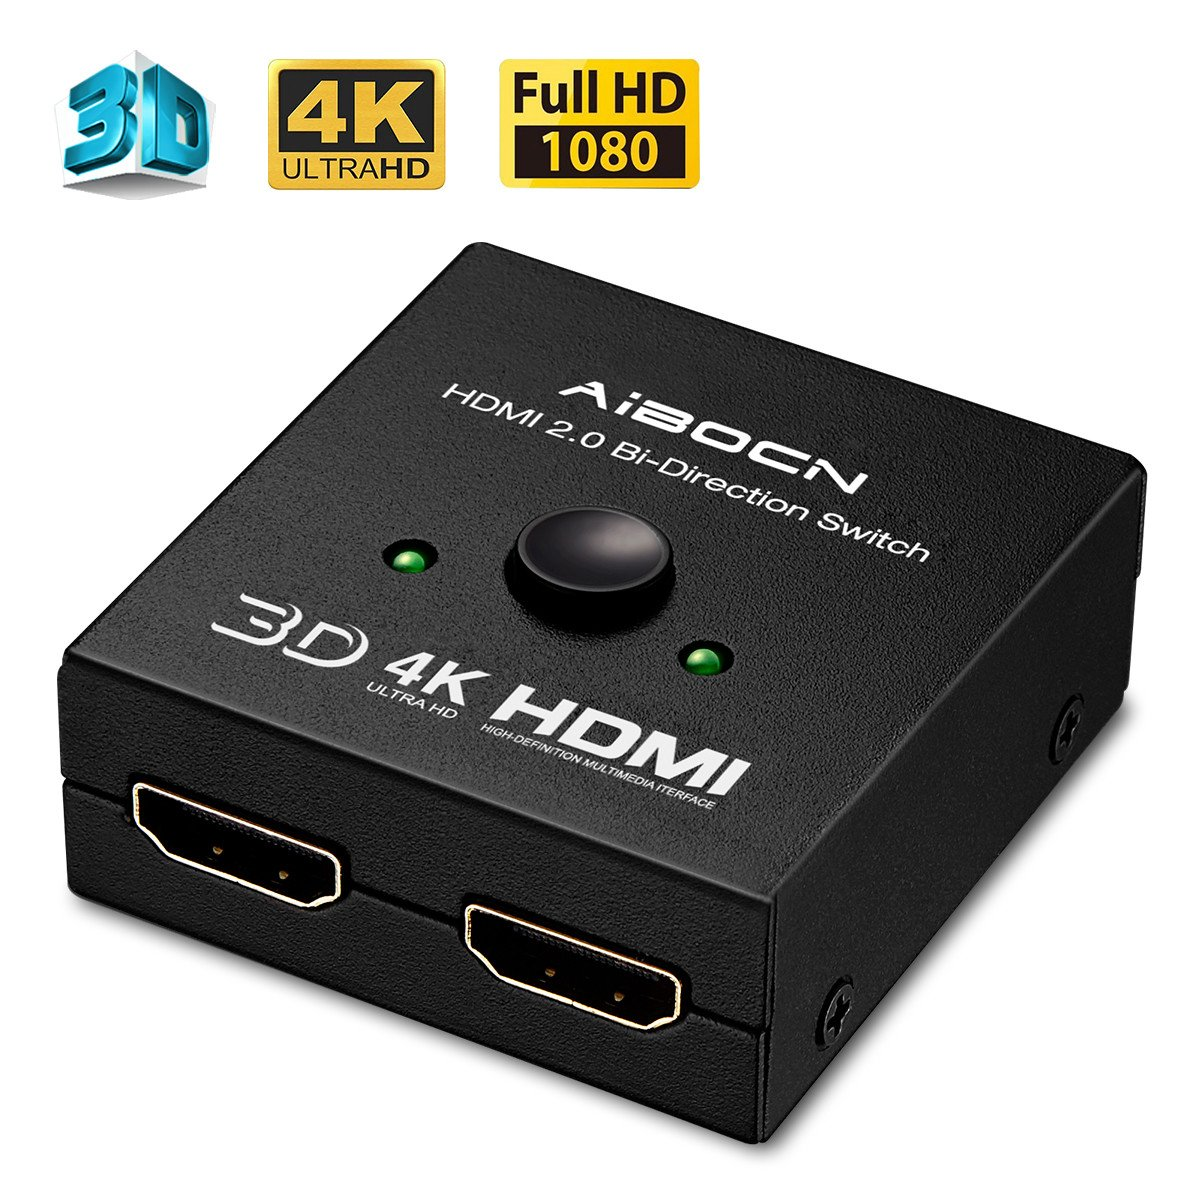 AIBOCN HDMI Switch 4K HDMI Splitter, 2 Ports Bi-Direction Manual Switch1 in 2 Out Or 2 Input 1 Output, Supports 4K 3D HD 1080P for PS4, Xbox, Roku 3, Blu-Ray Player, HDTV etc. VK-TC03